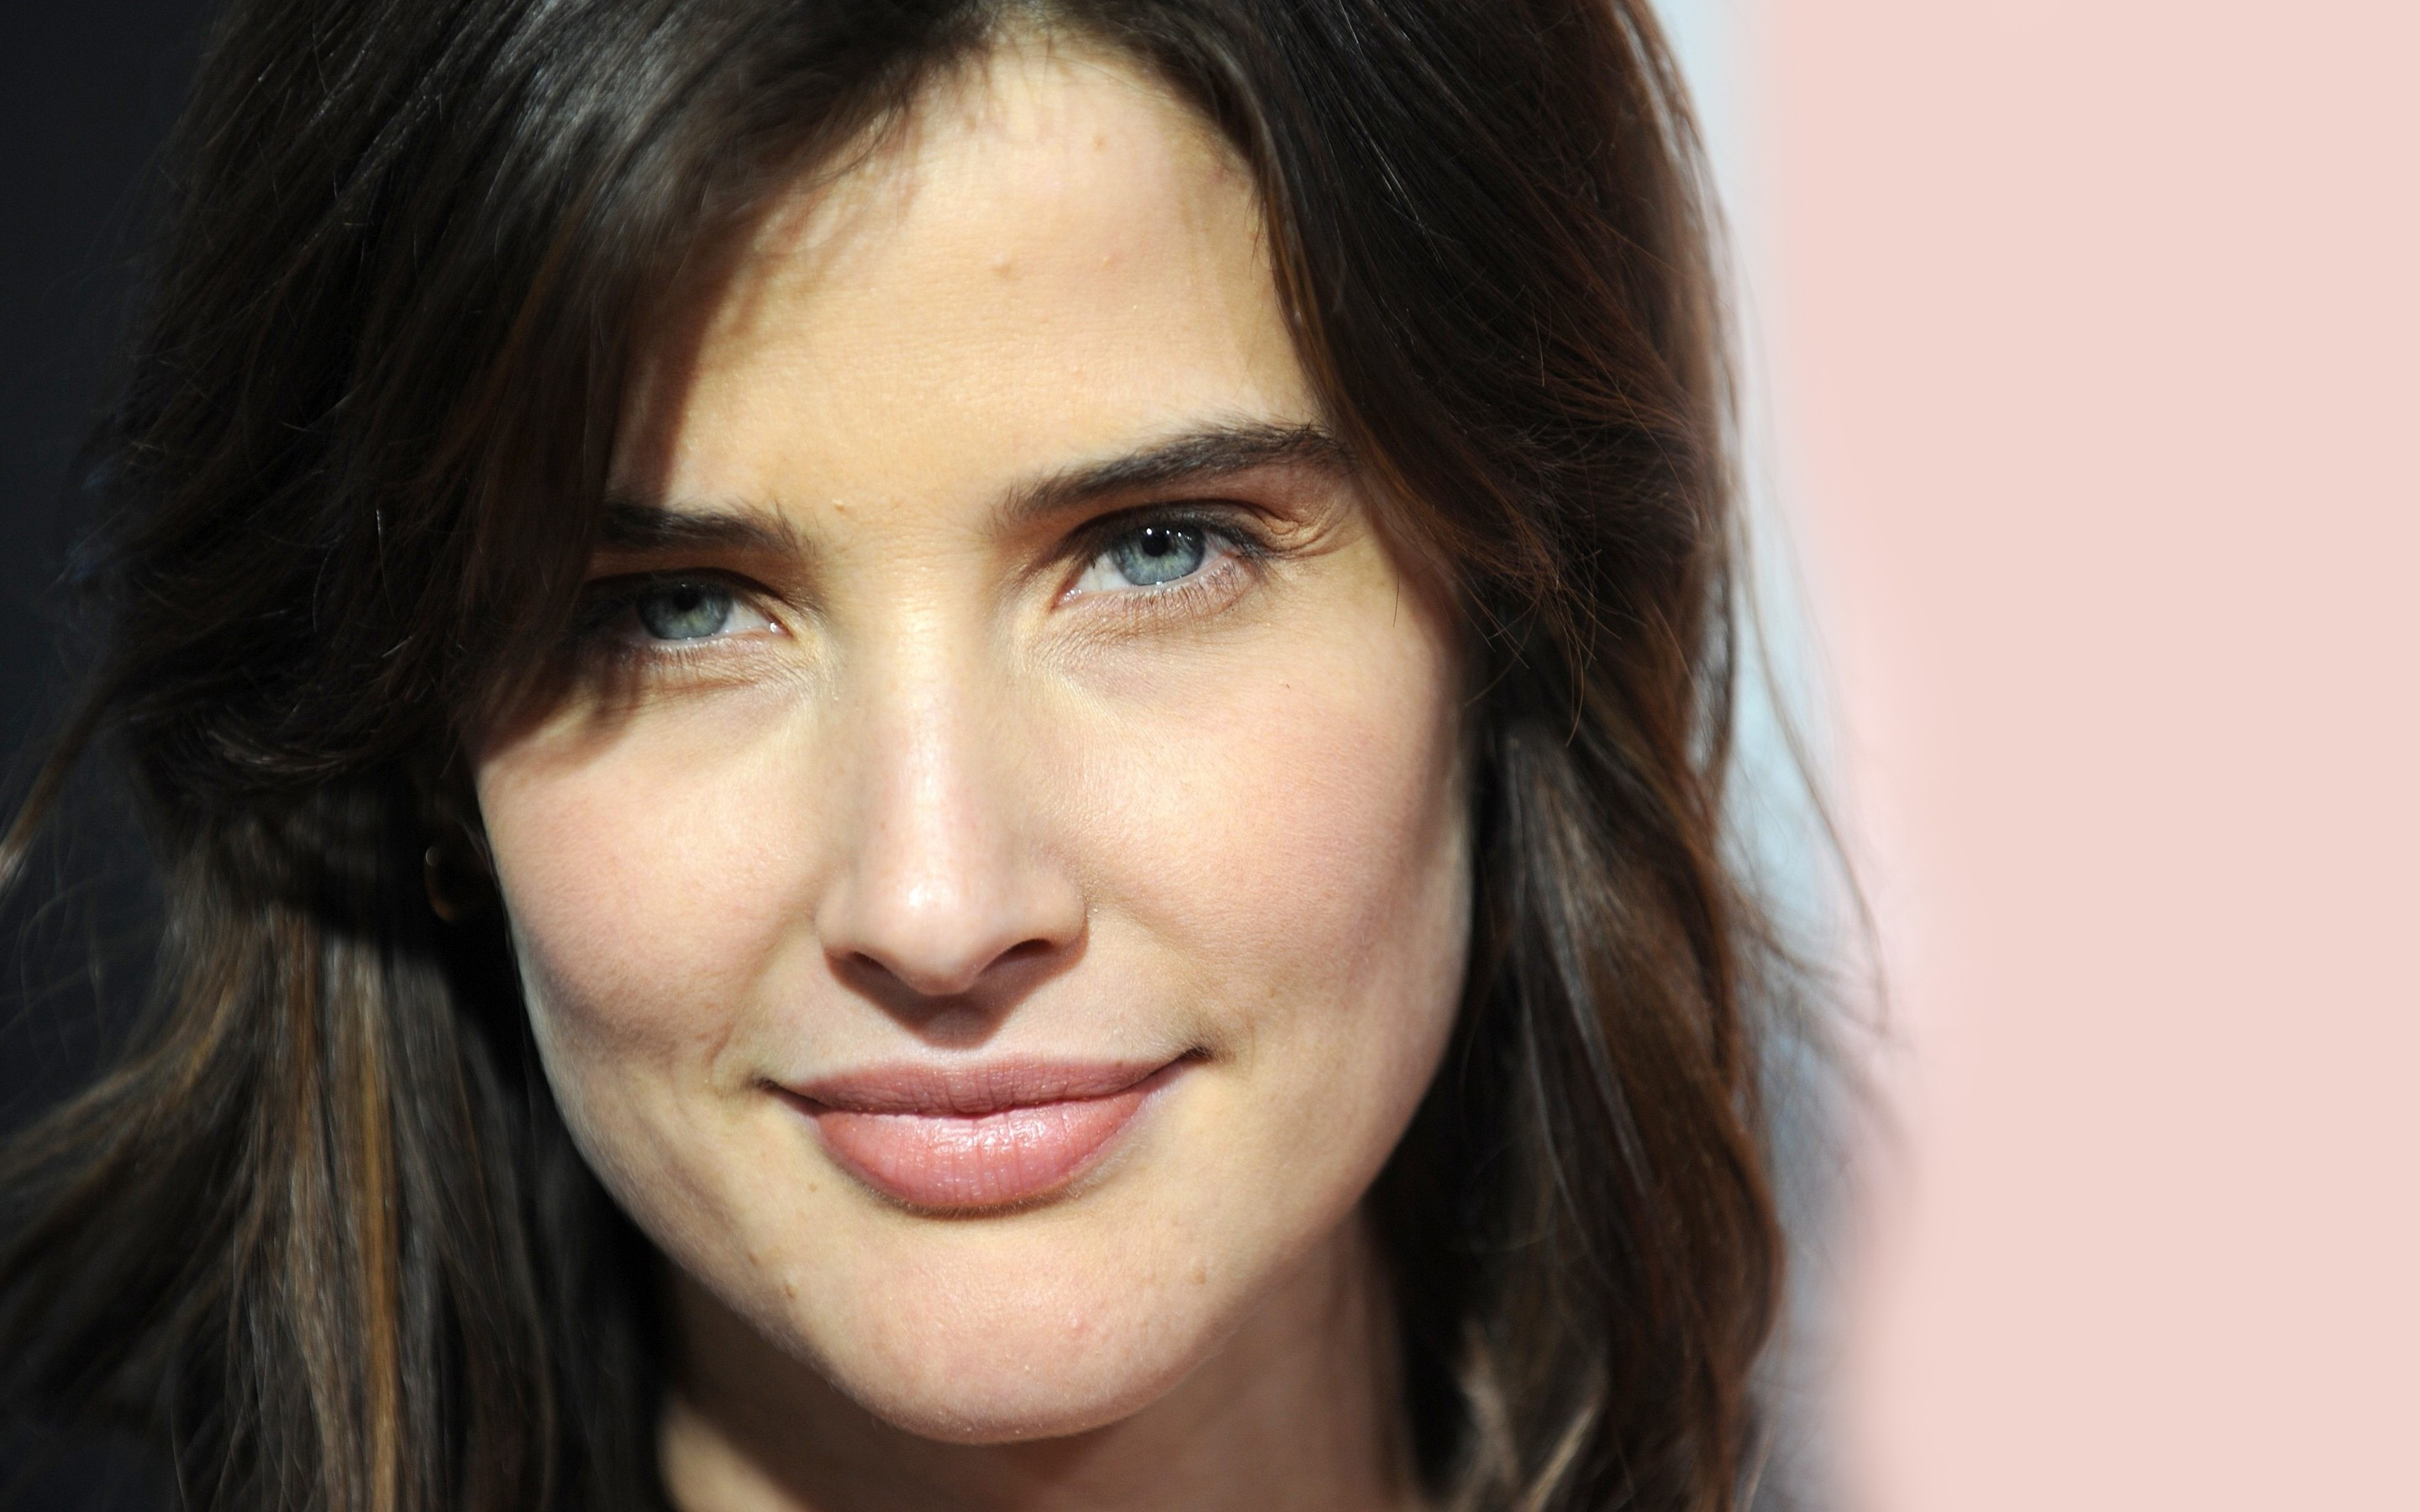 2880x1800 - Cobie Smulders Wallpapers 19